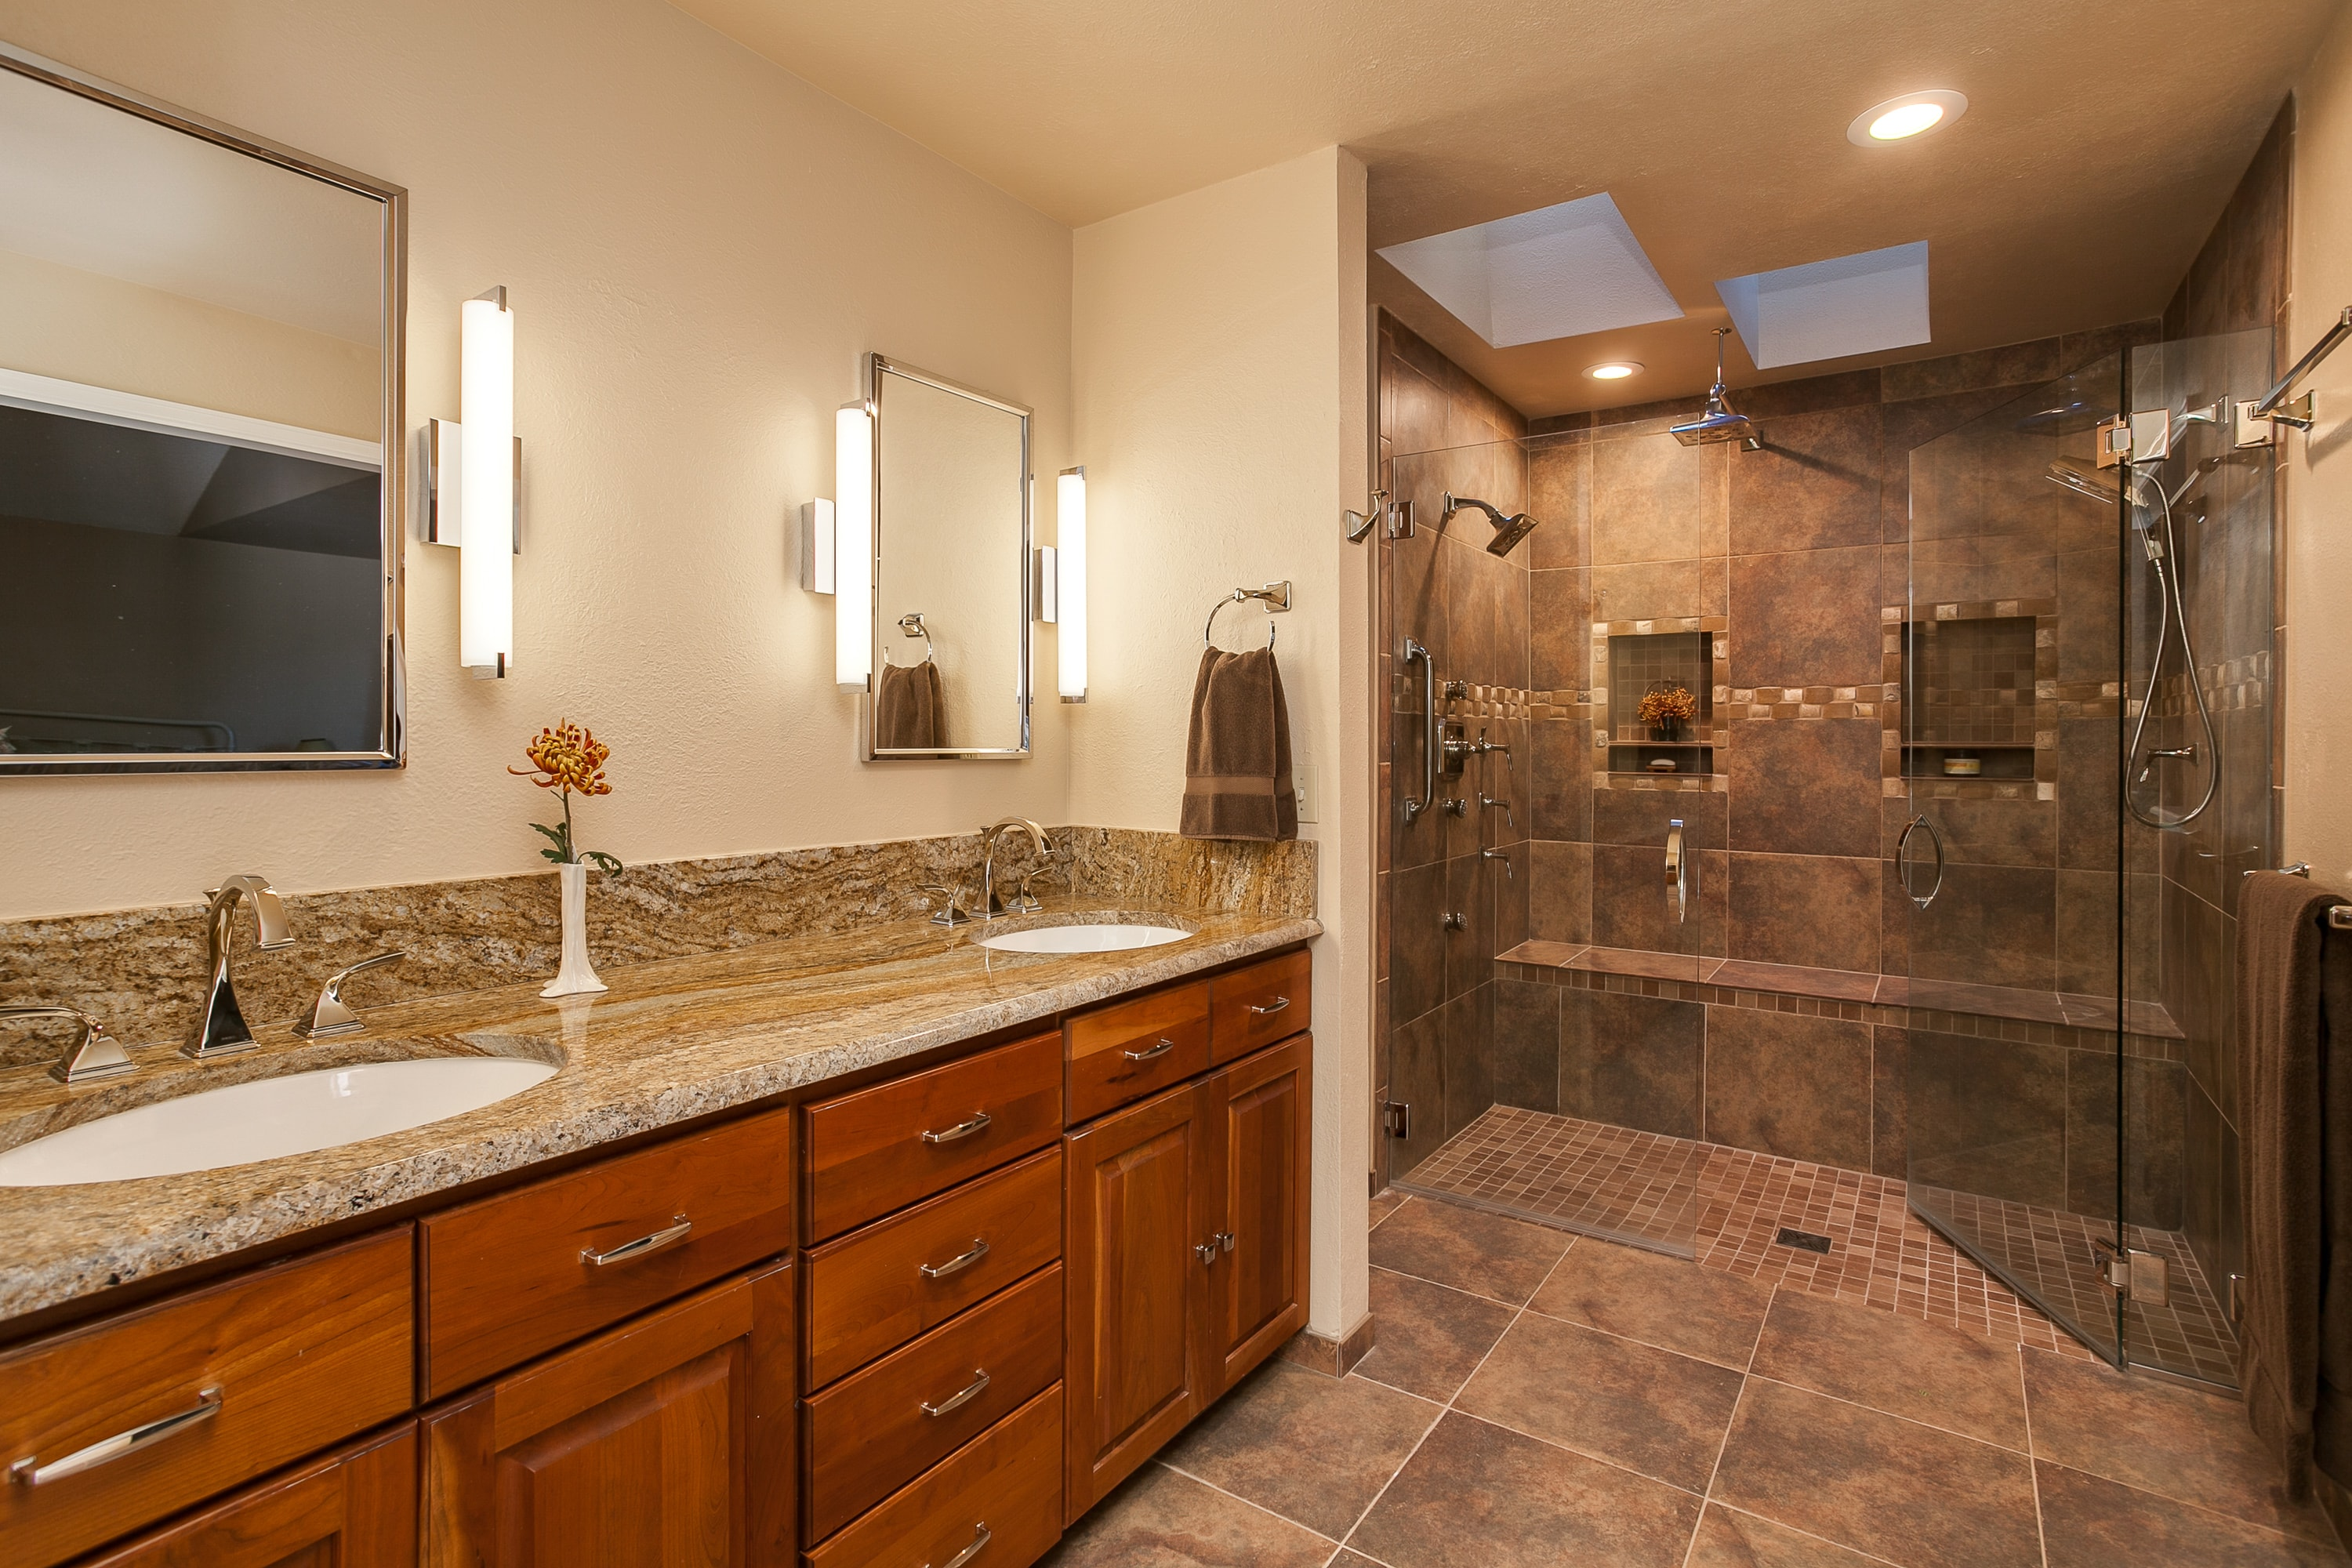 Bathrooms Photo Gallery Photo Gallery JM Kitchen and Bath